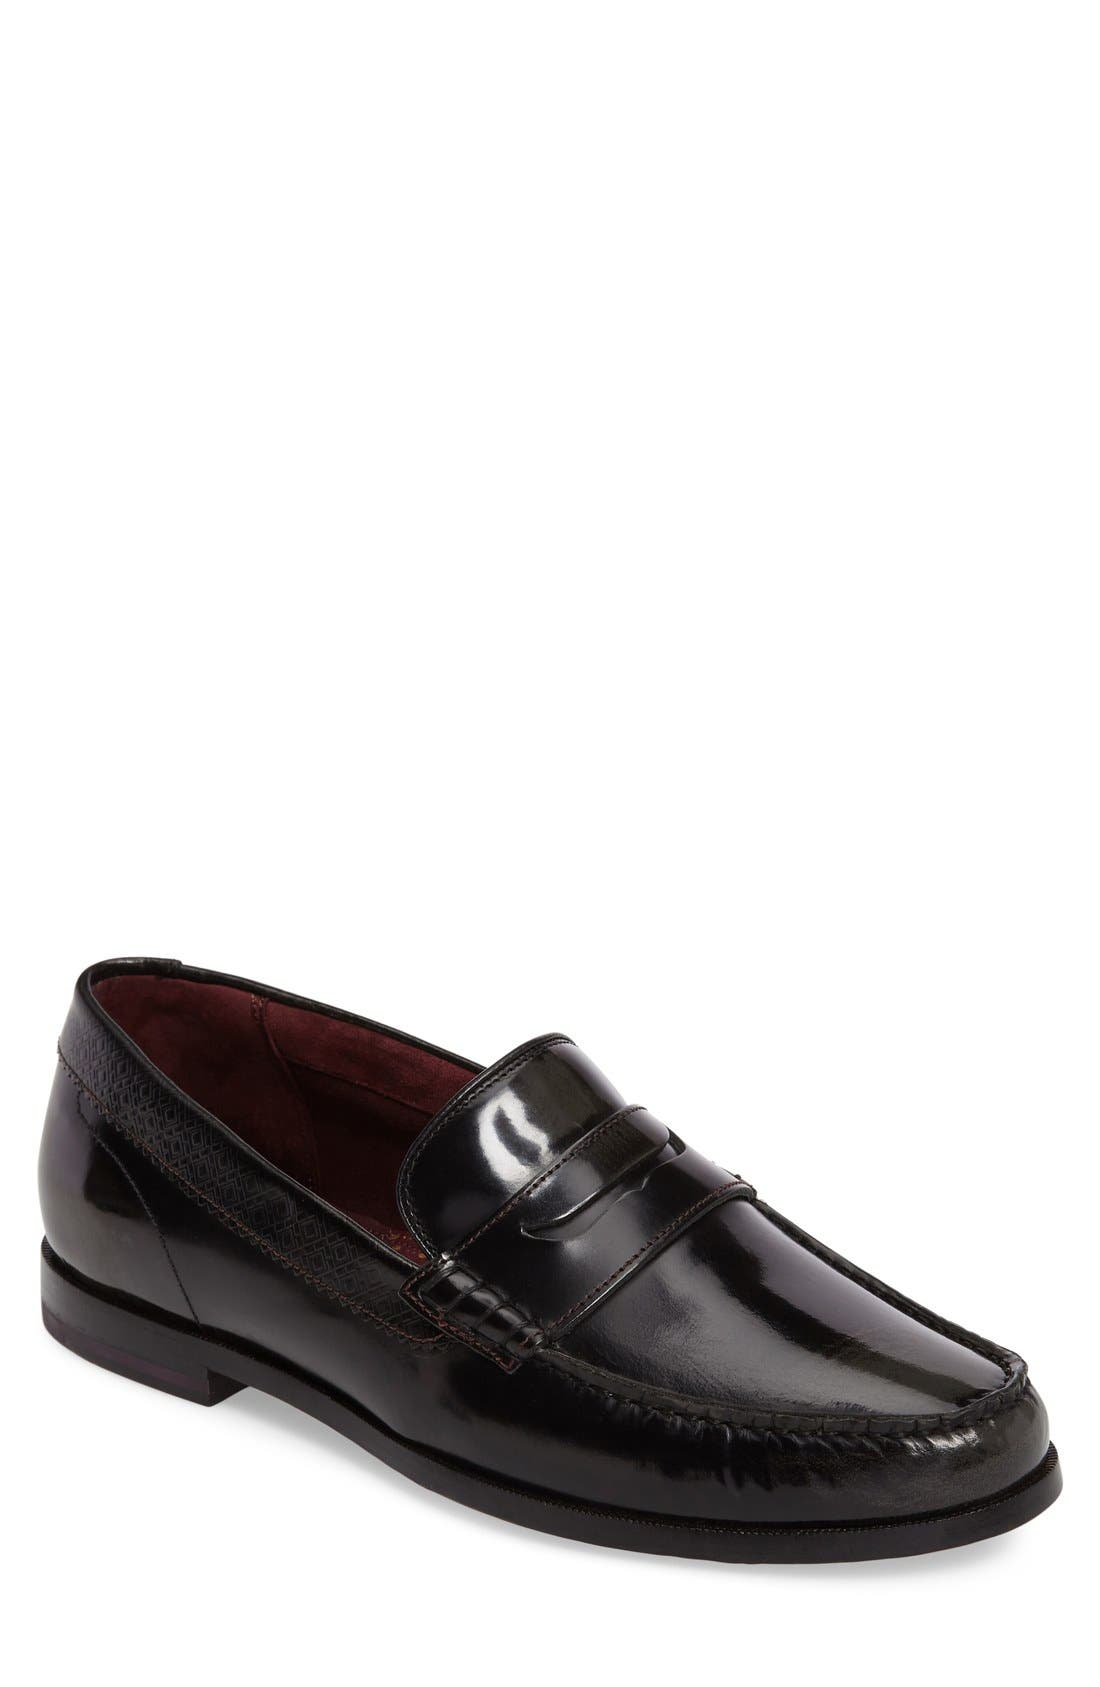 Rommeo Penny Loafer,                         Main,                         color, 028